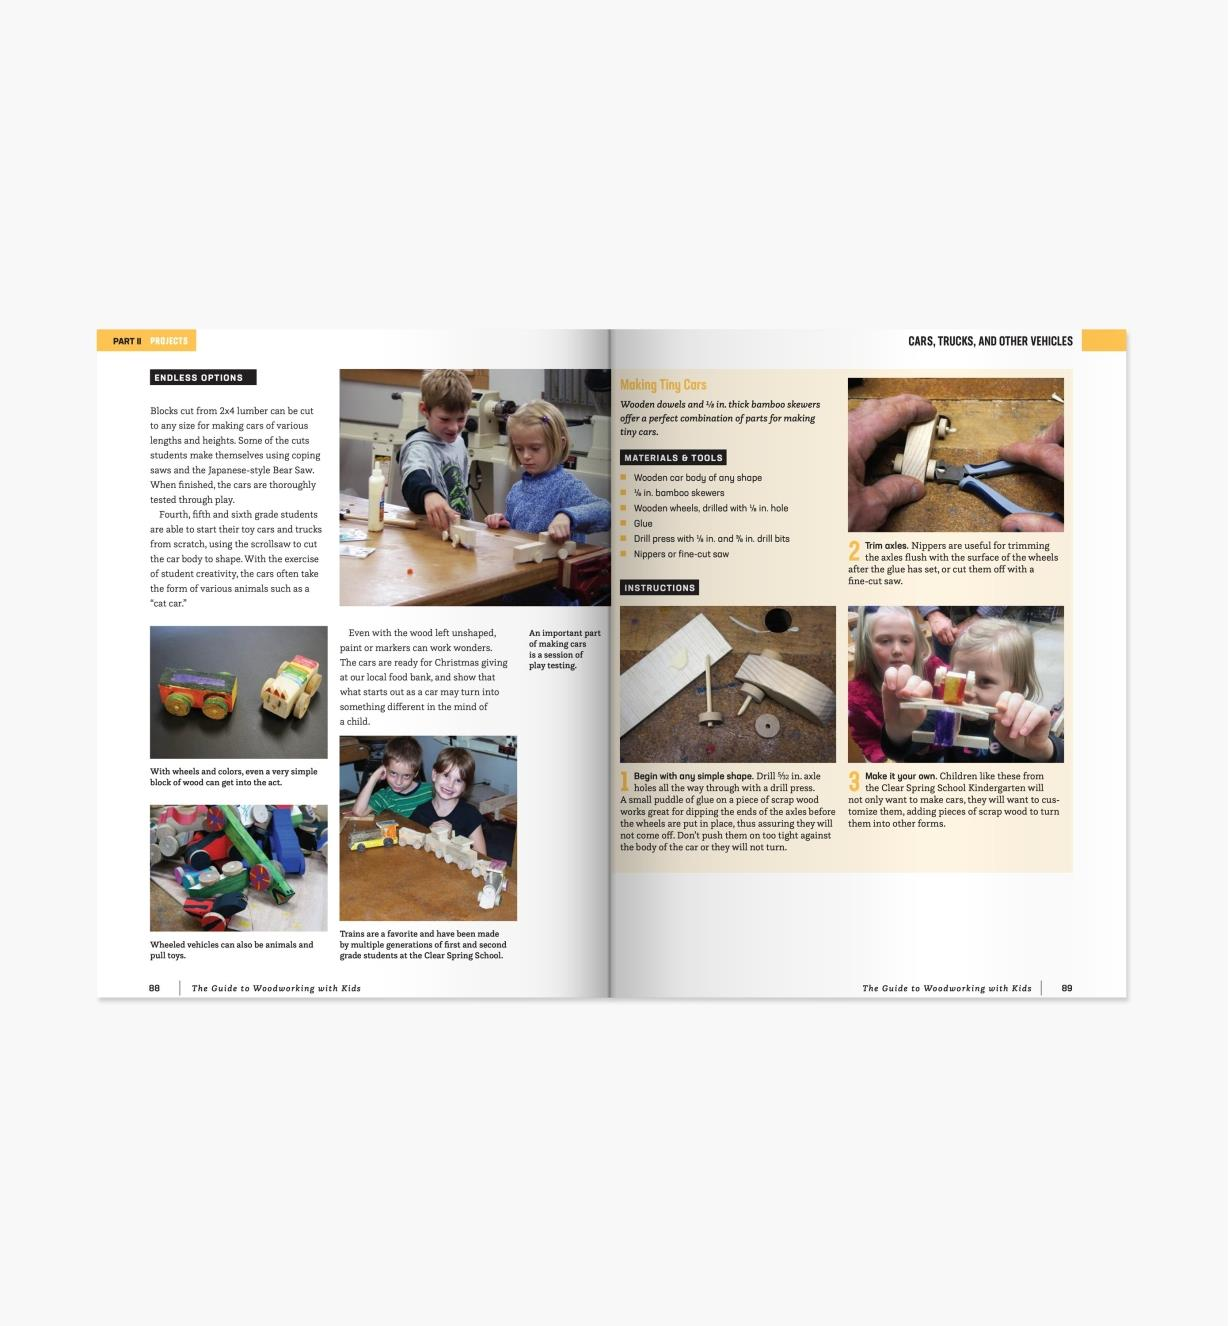 49L2750 - The Guide to Woodworking with Kids